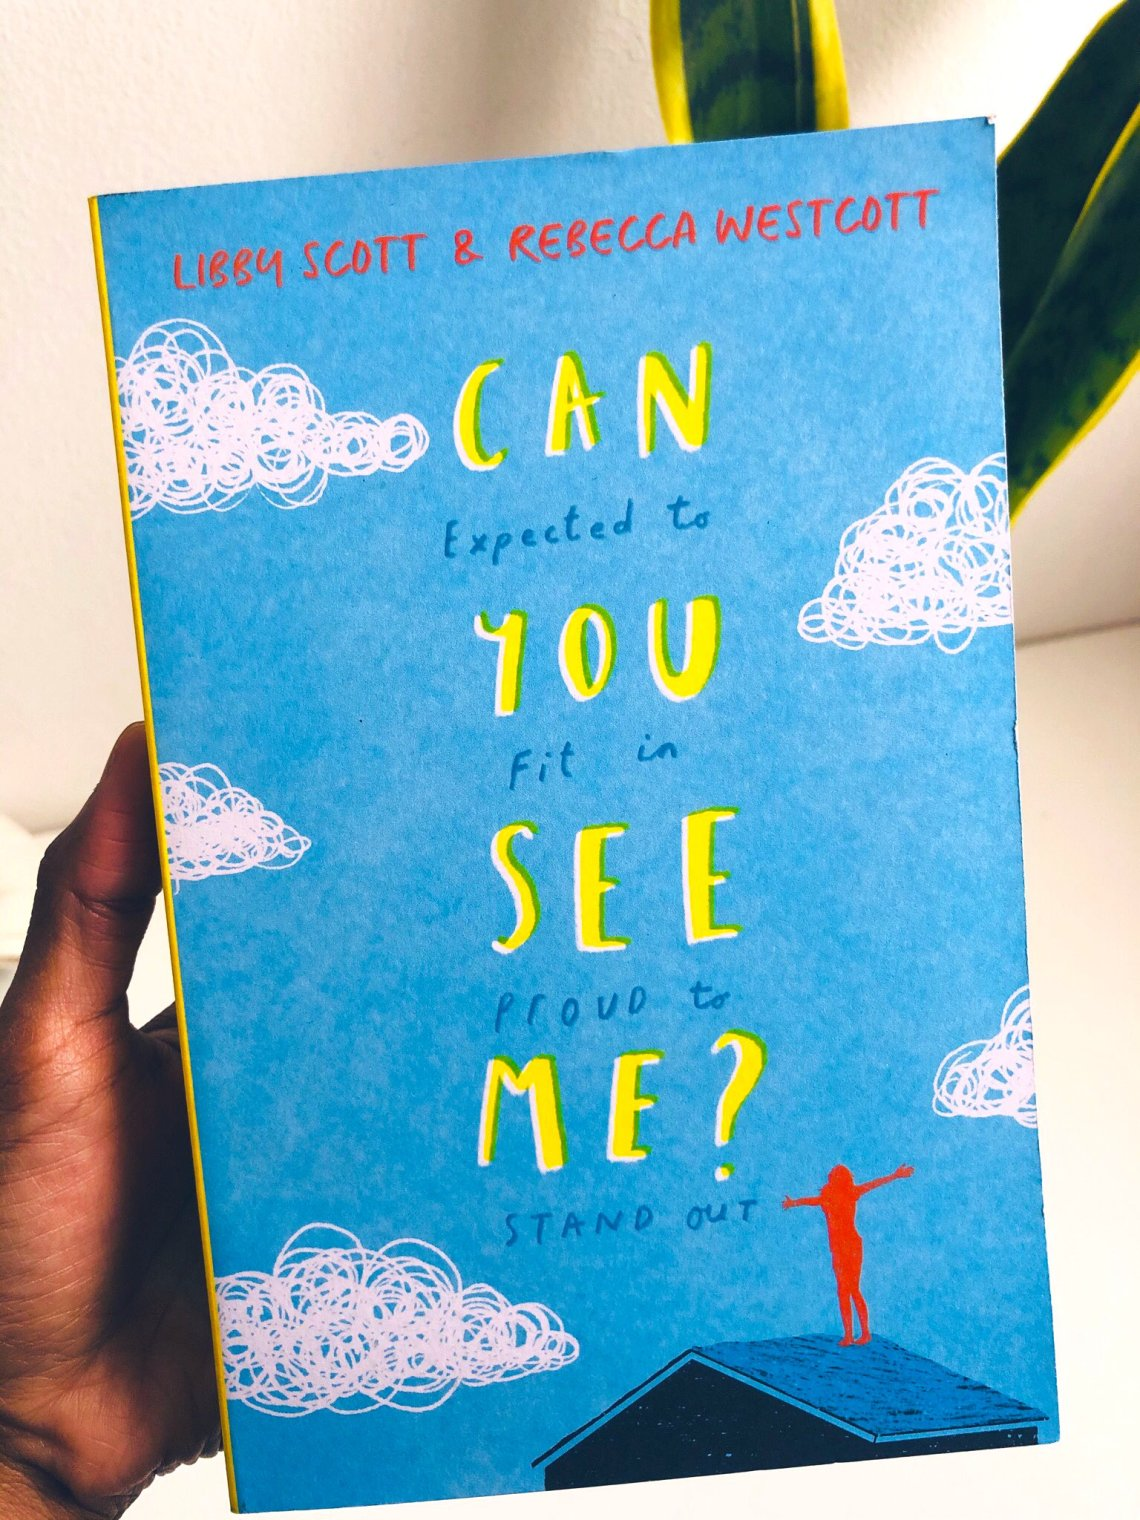 Can You See Me? Written by Libby Scott & Rebecca Westcott